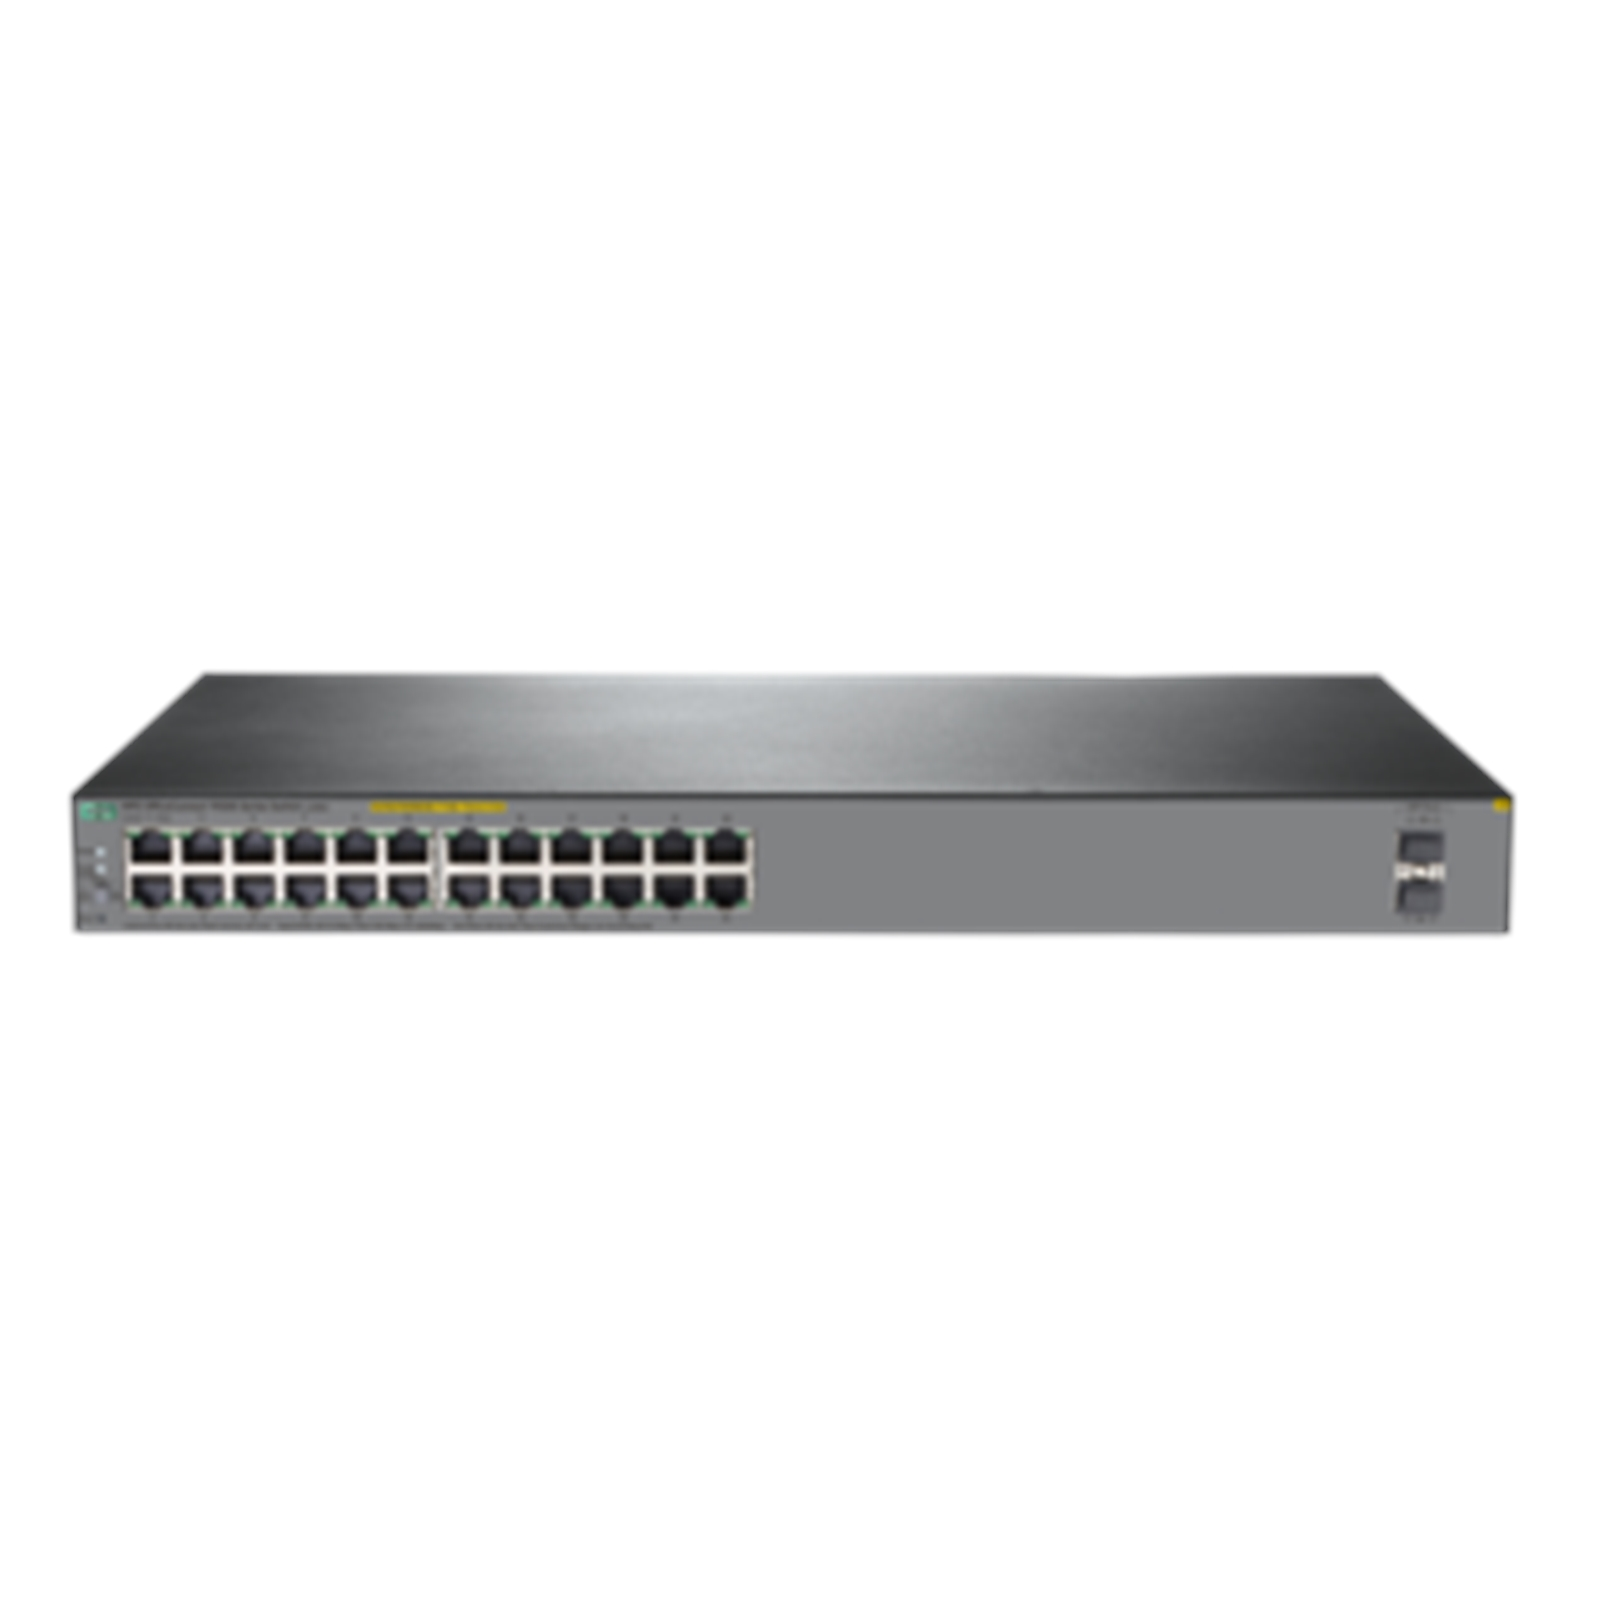 Hpe Managed Switches Jl385a Servers Plus